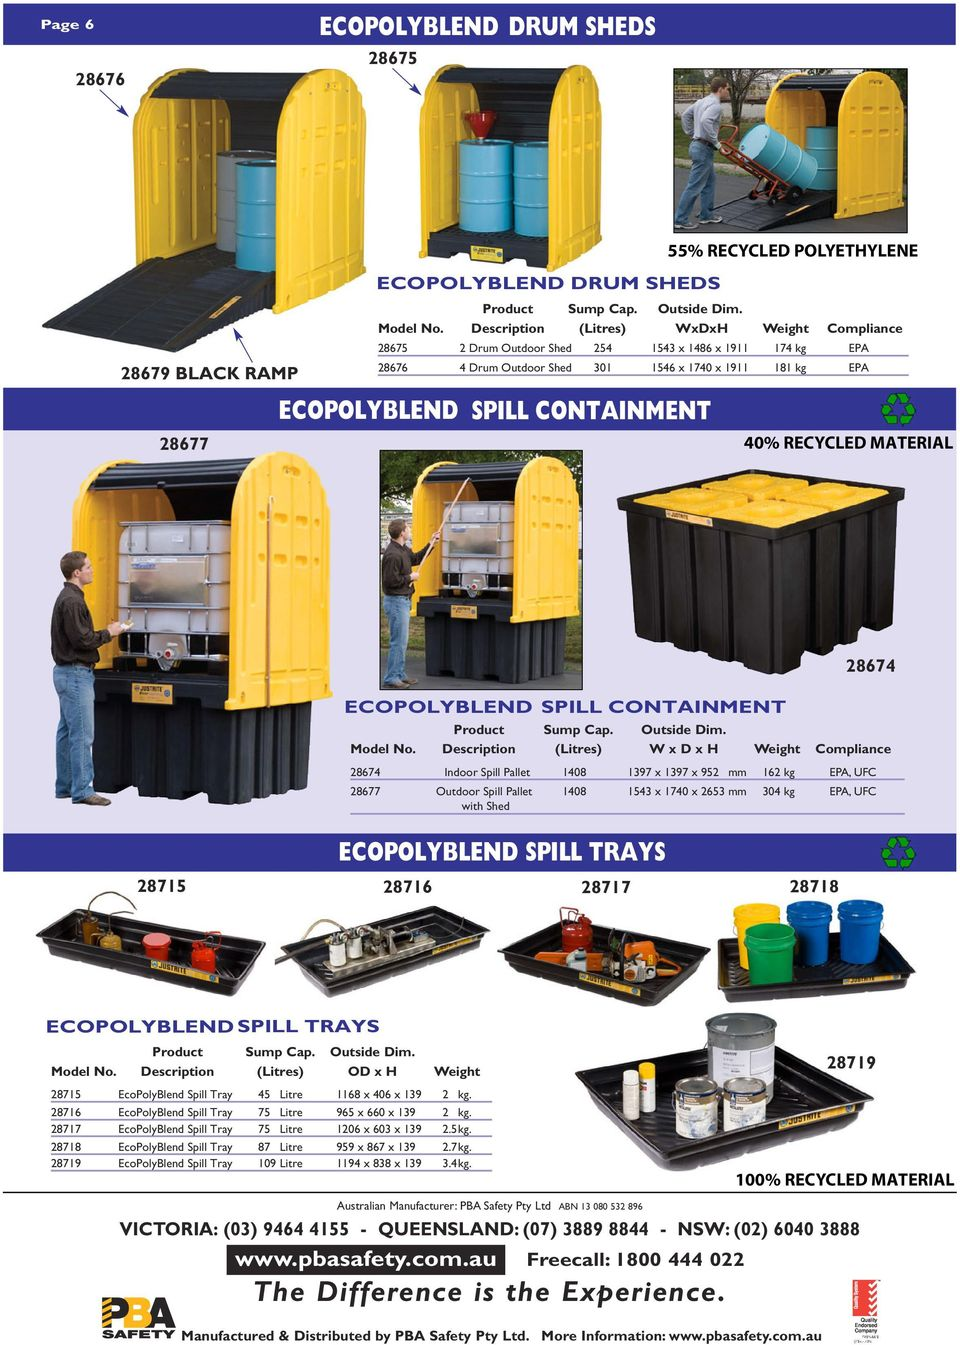 28677 28674 ECOPOLYBLEND SPILL CONTAINMENT Model No. Product Description Sump Cap. (Litres) 28674 Indoor Spill Pallet 28677 Outdoor Spill Pallet with Shed Outside Dim.